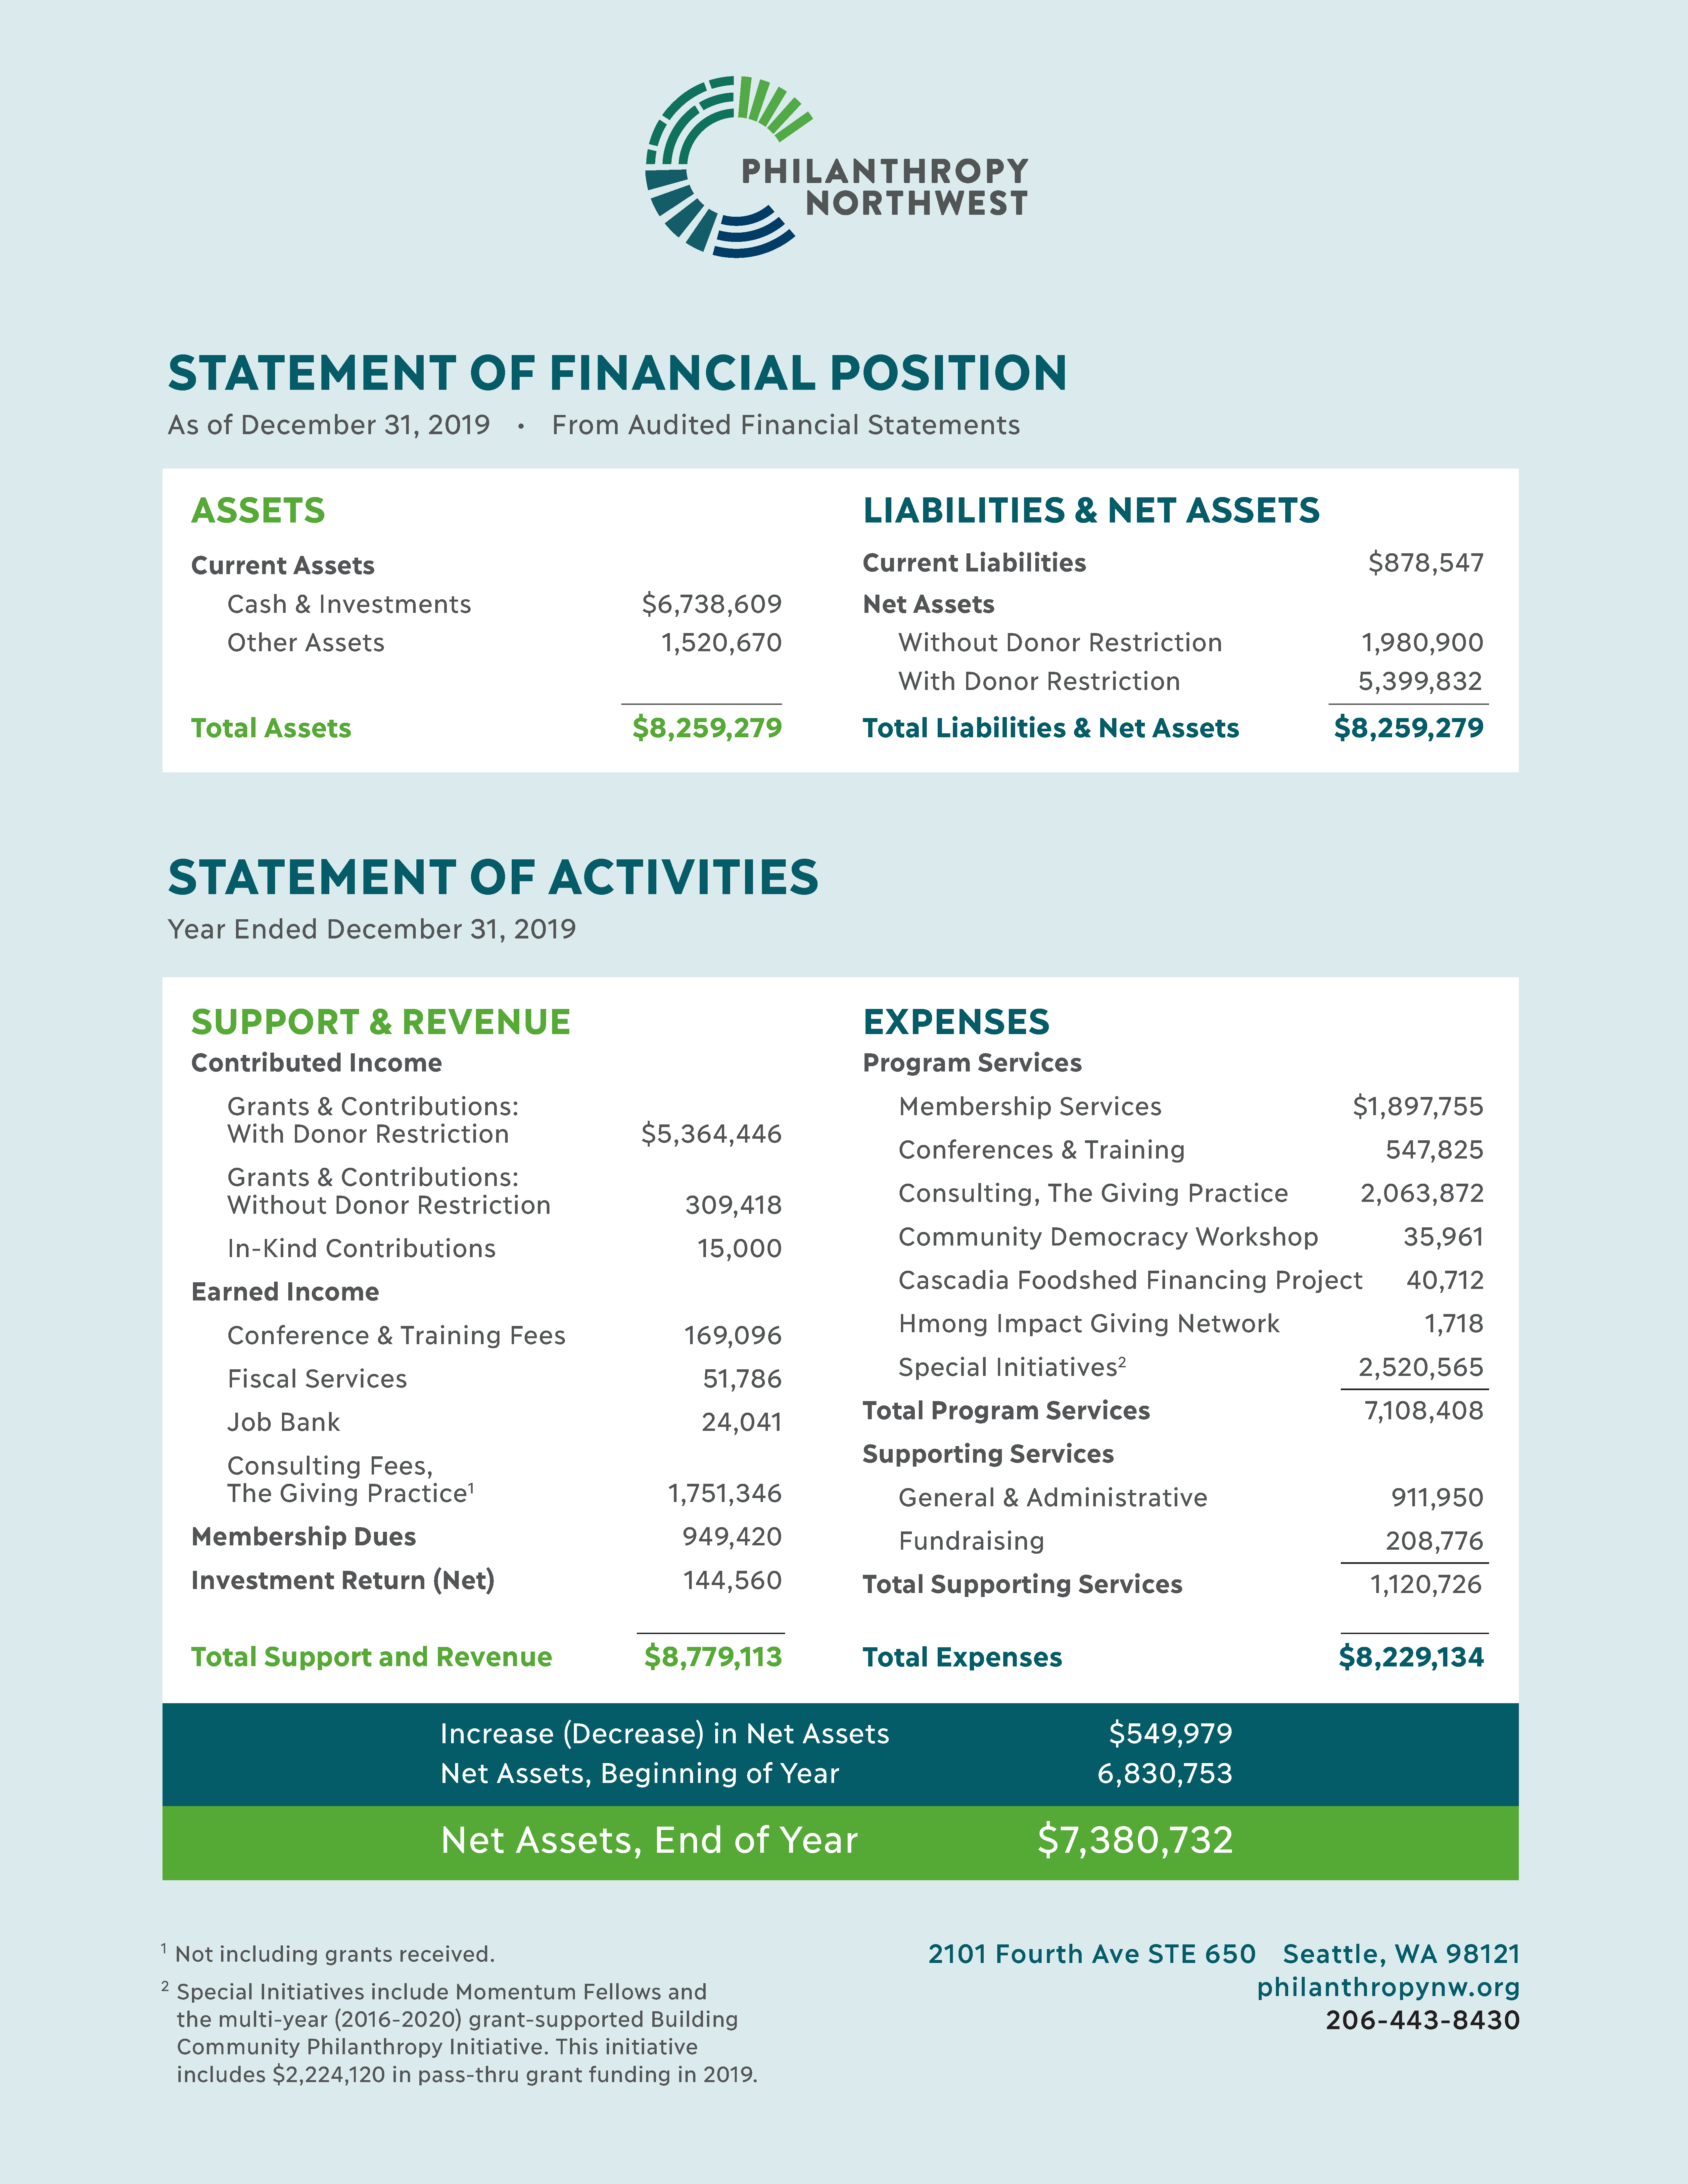 Image showing Financial Statement of PNW for 2019